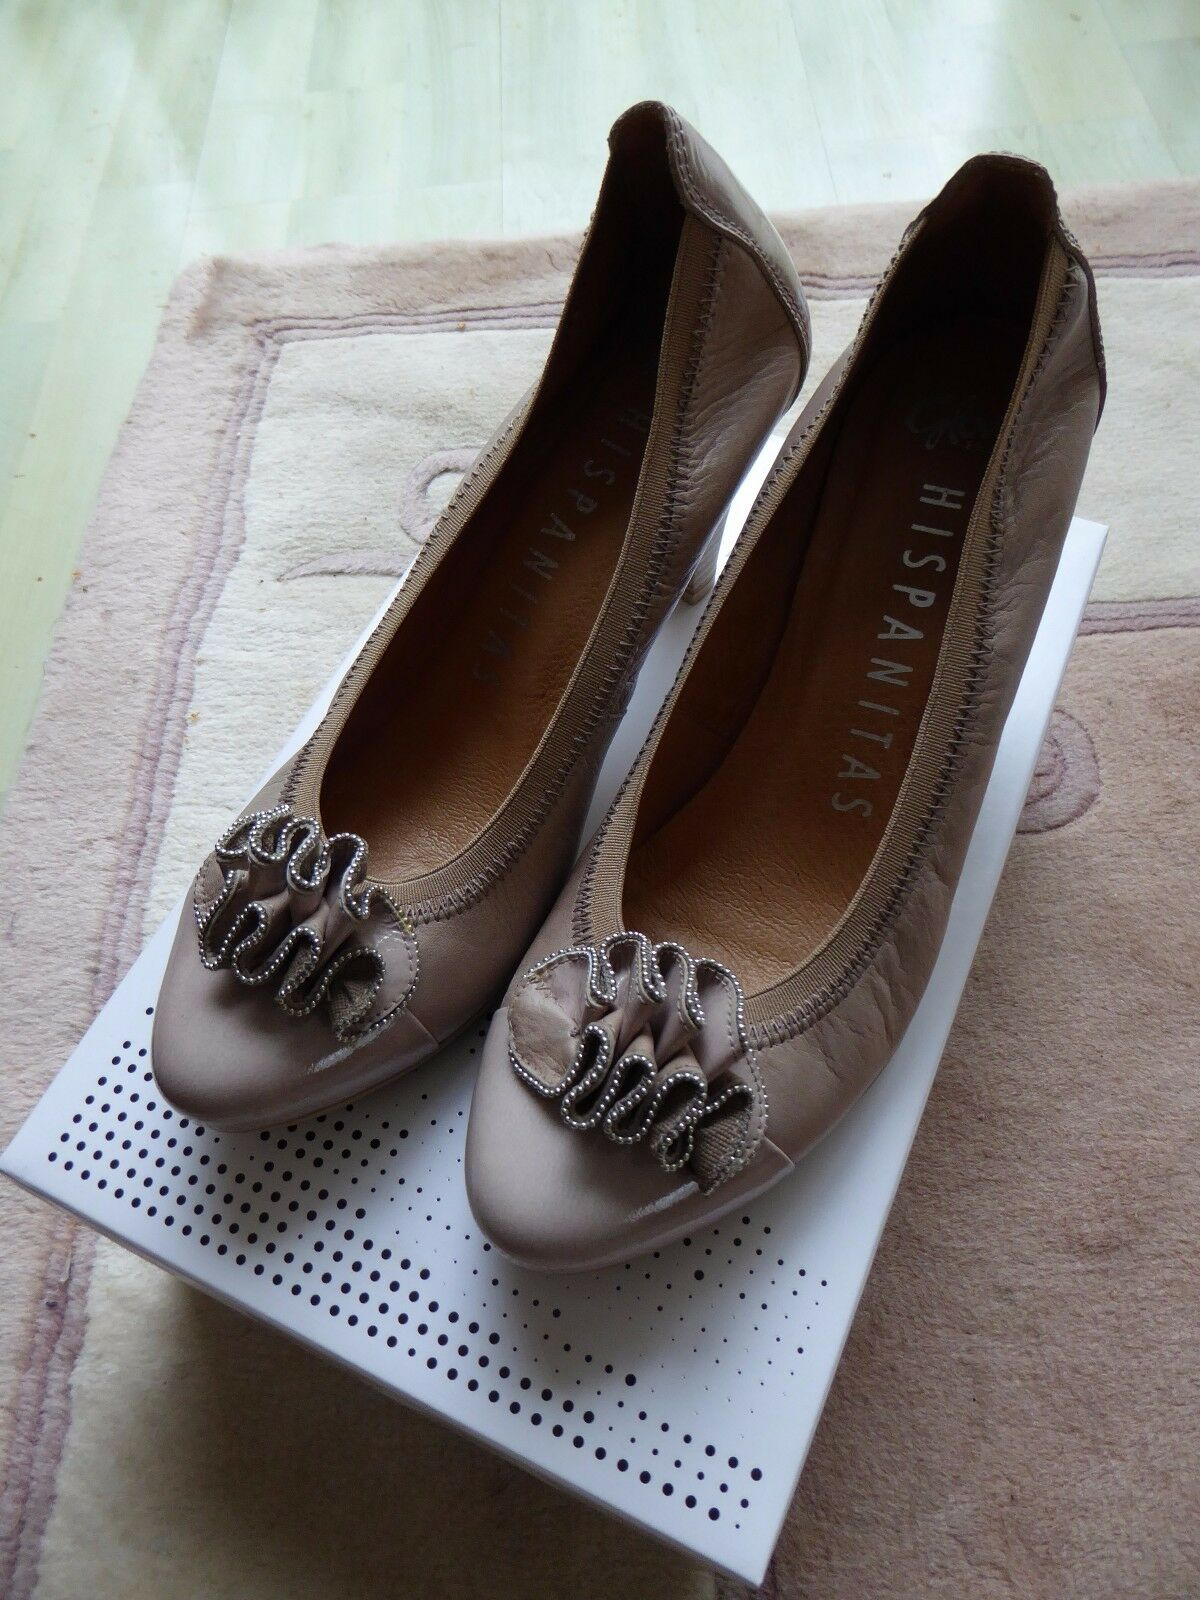 Descuento barato Hispanitas Sauvage-V3 Marmo beige leather heels - 6